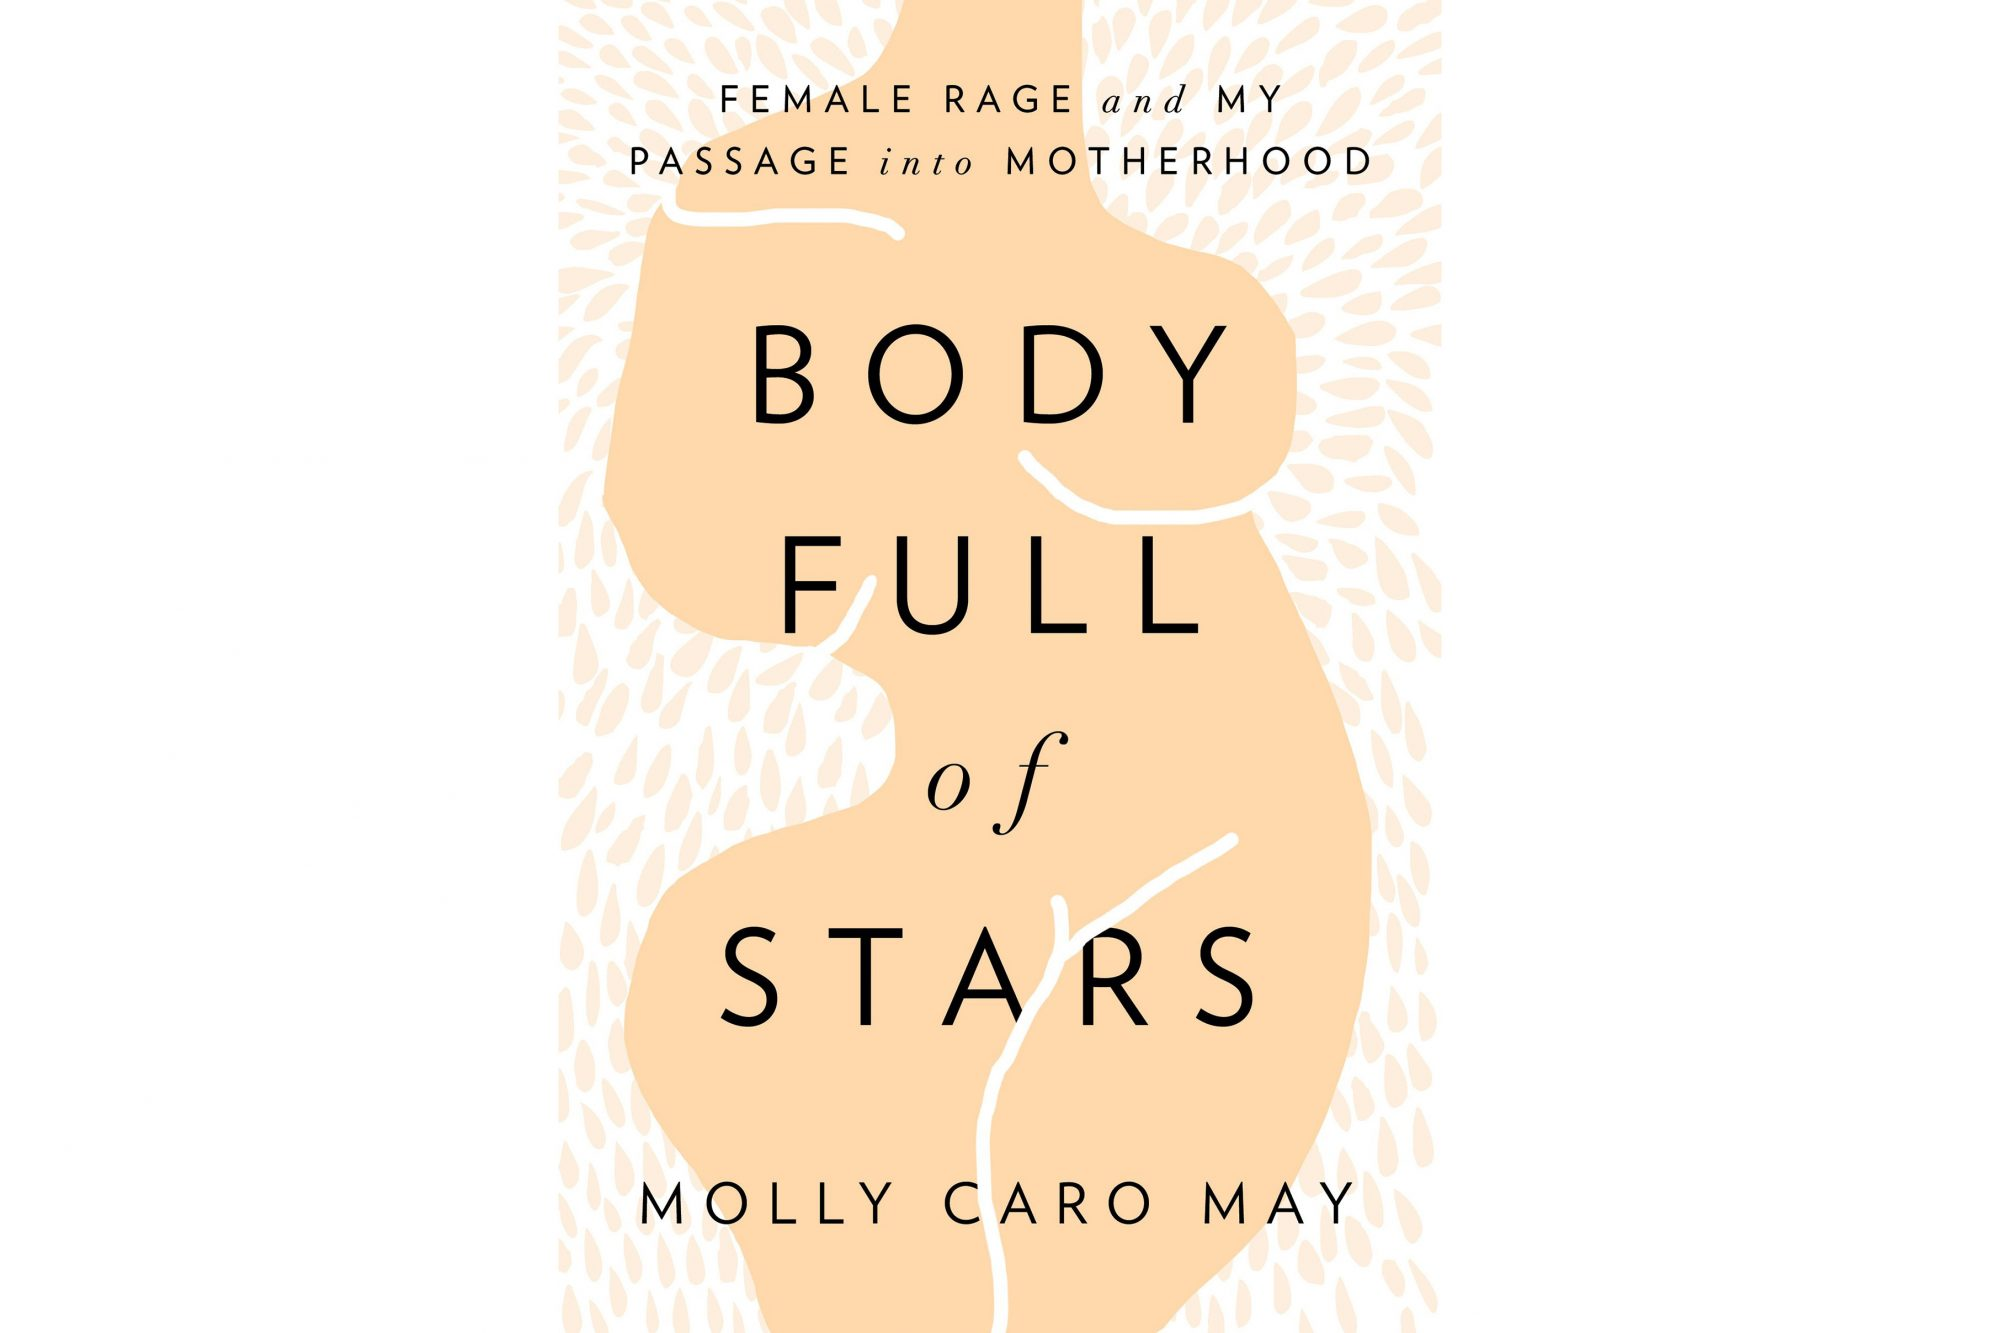 Body Full of Stars, by Molly Caro May